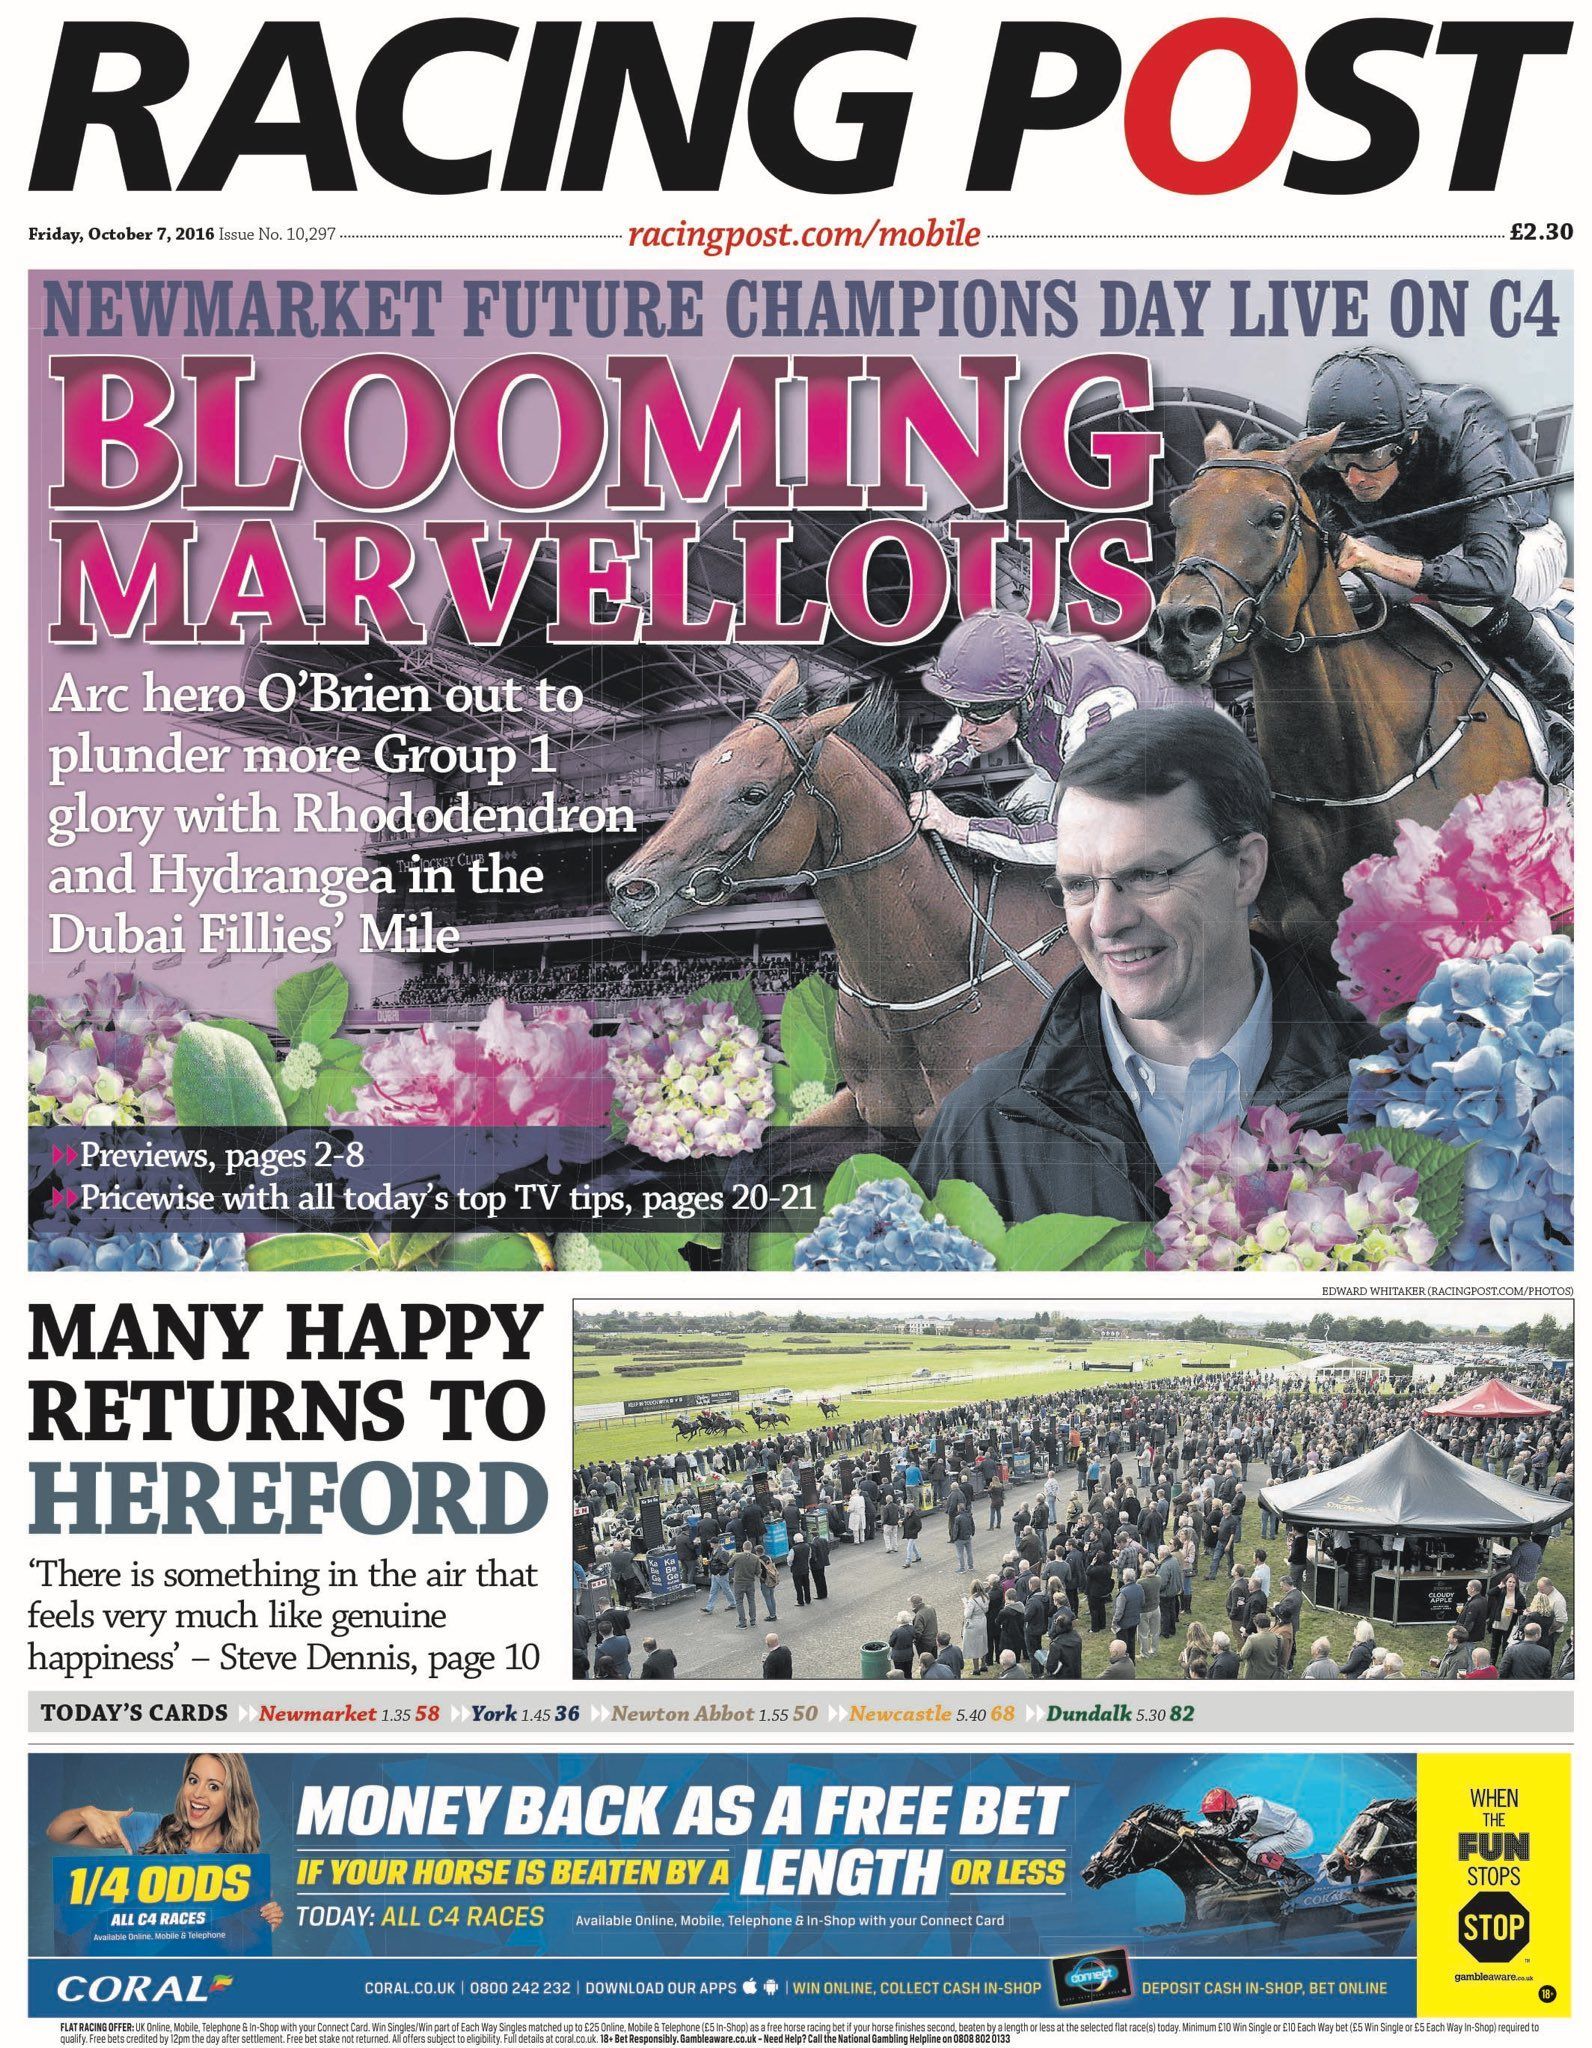 Friday's Racing Post Blooming Marvellous #tomorrowspaperstoday #bbcpapers https://t.co/bRvSJ1j9c5